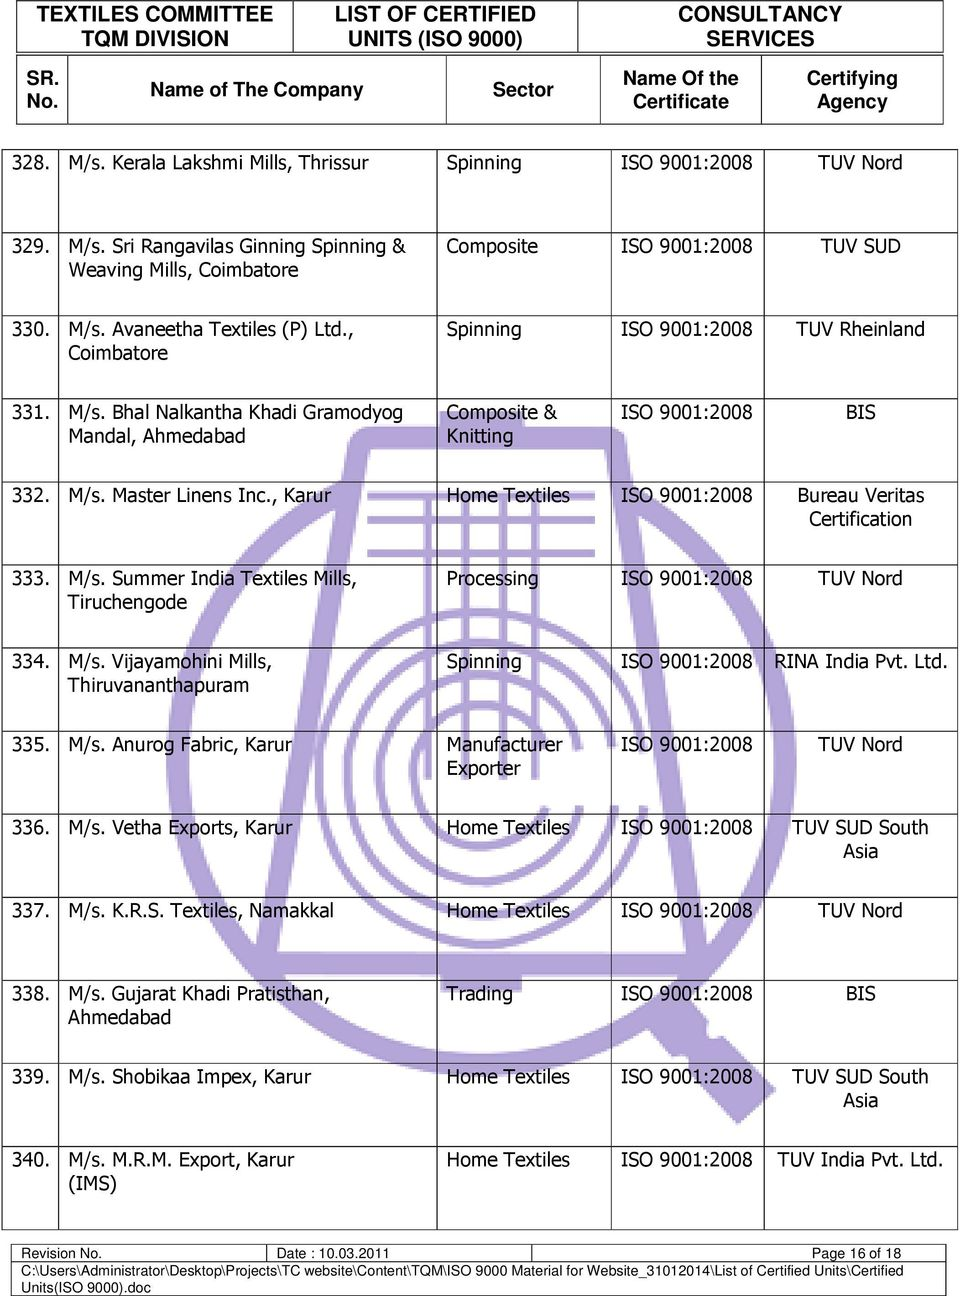 LIST OF CERTIFIED UNITS (ISO 9000) - PDF